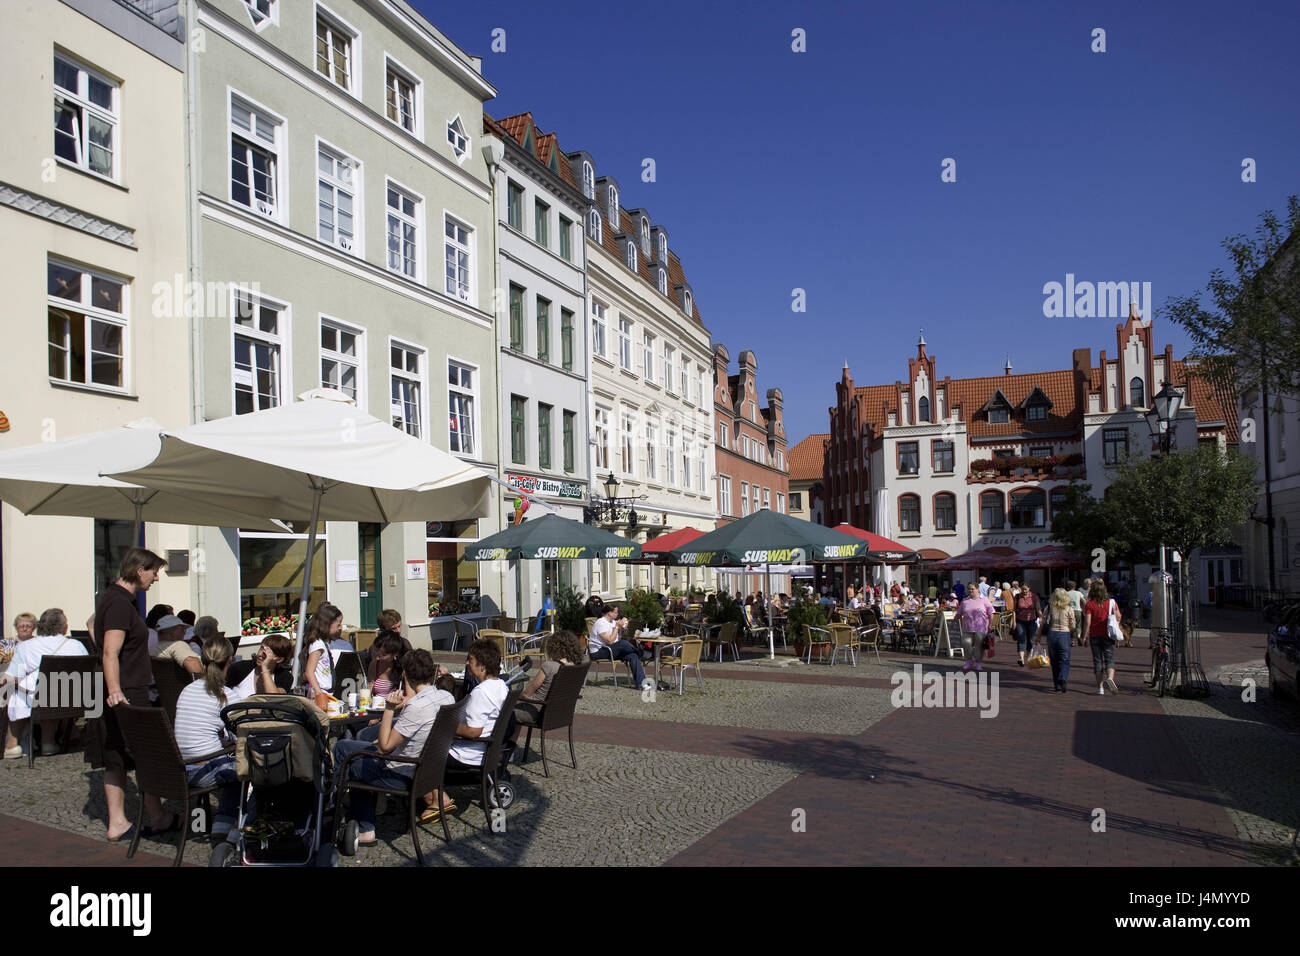 Germany, Mecklenburg-West Pomerania, Hanseatic town Wismar, marketplace, street bars, guests, passers-by, - Stock Image